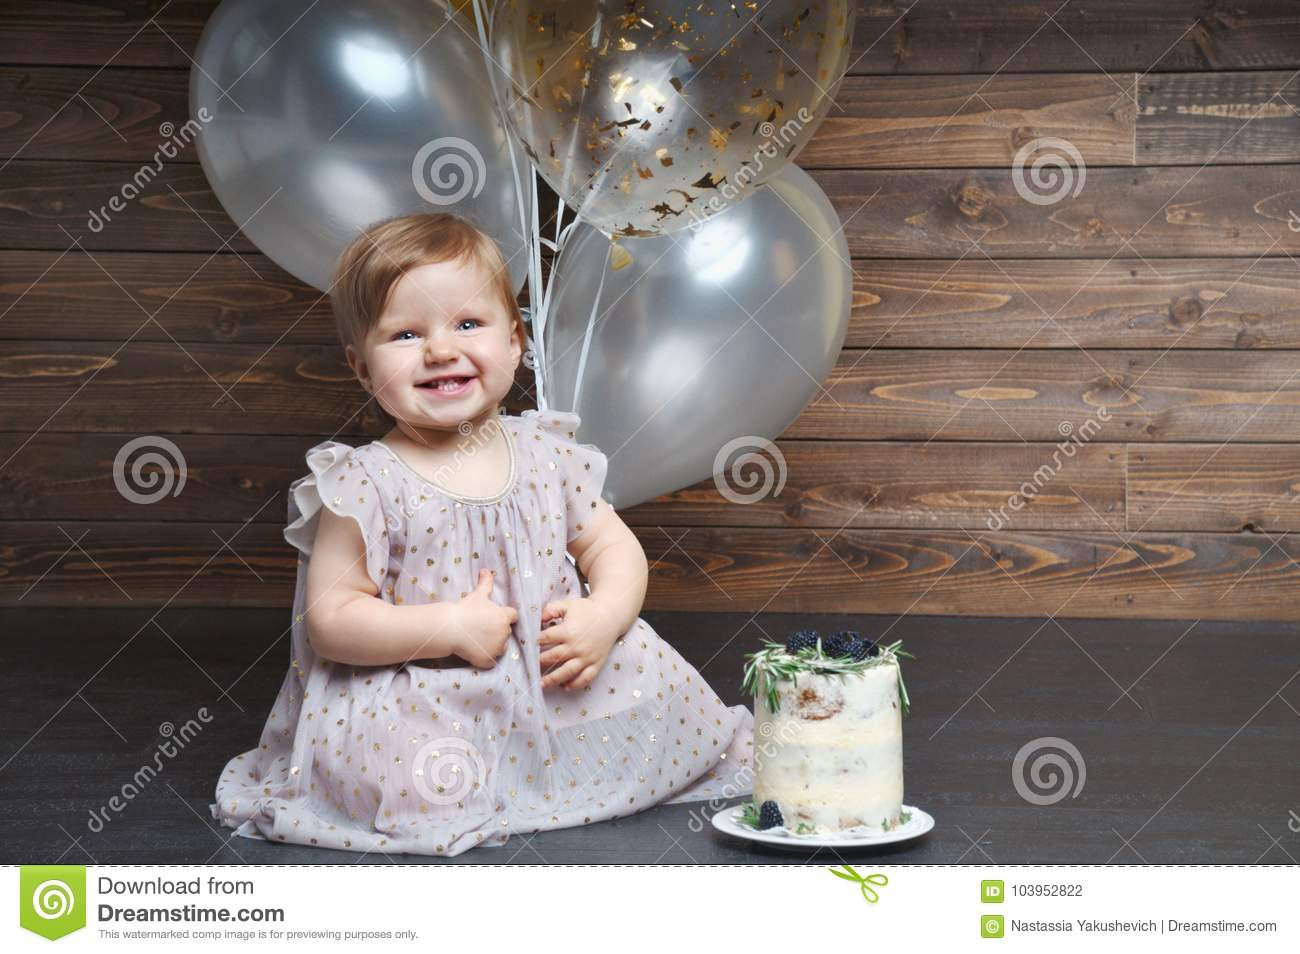 Cute smiling little girl celebrate her first birthday party with balloons and cake